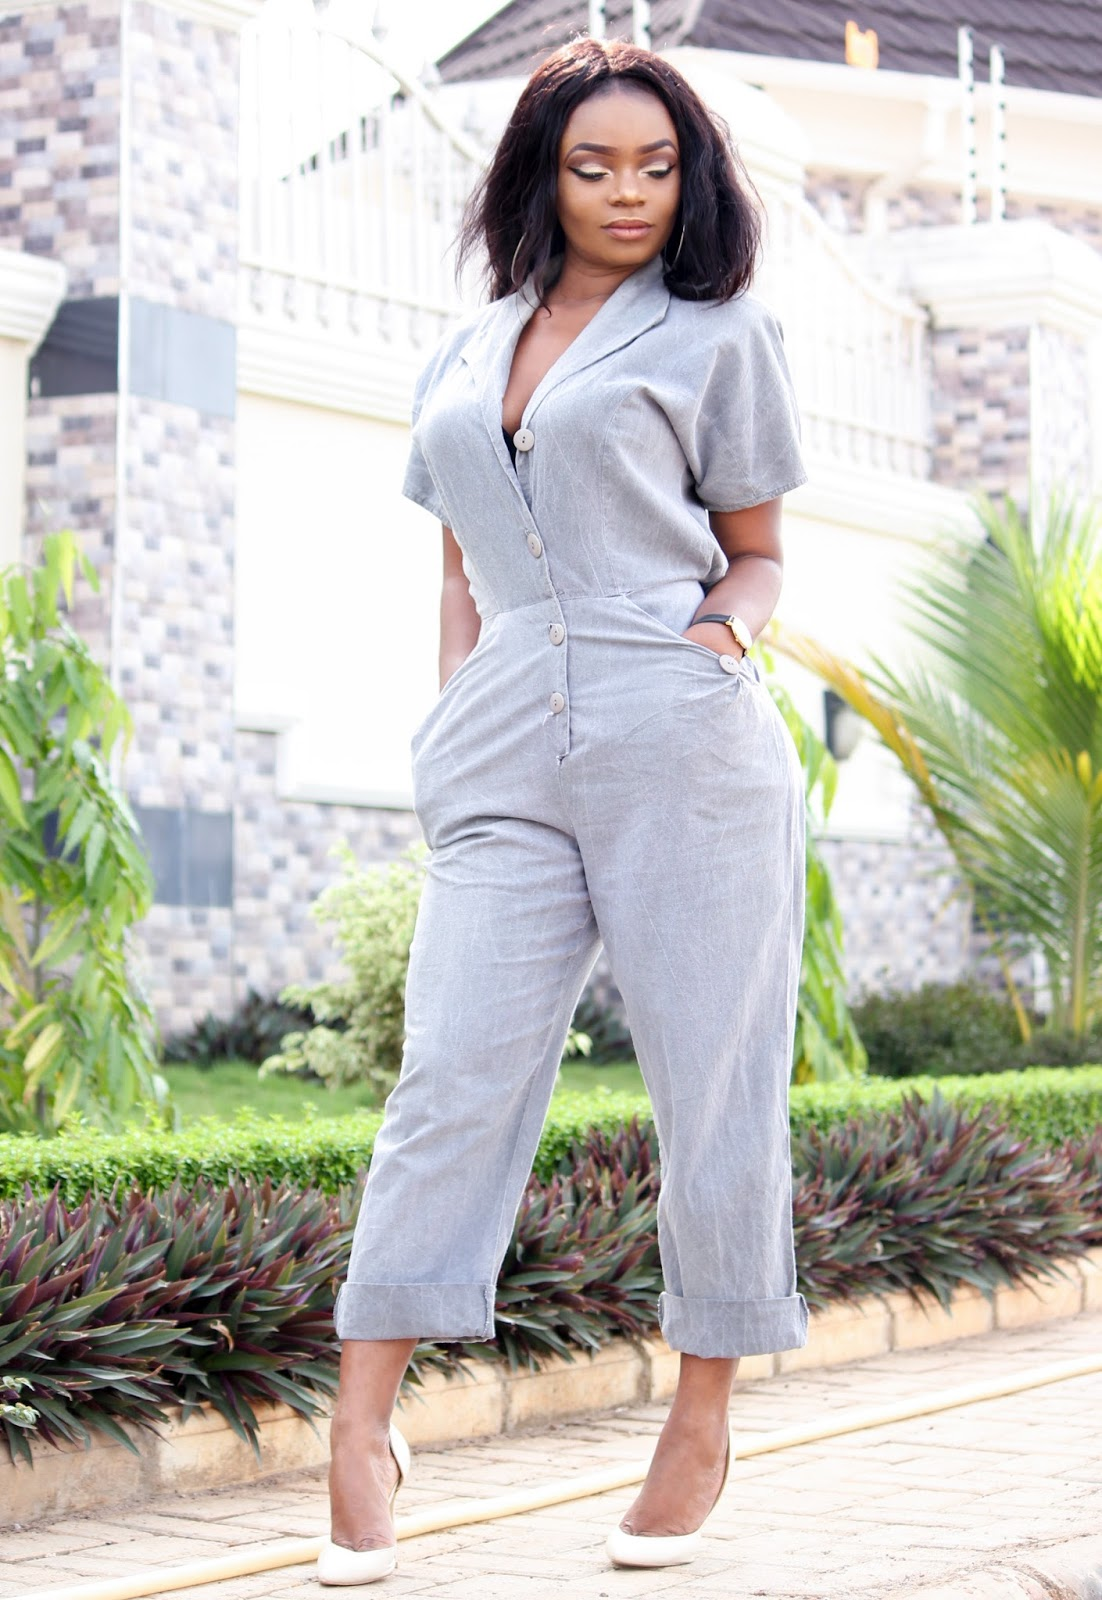 VINTAGE JUMPSUIT - Vintage Jumpsuit with Boohoo court shoes